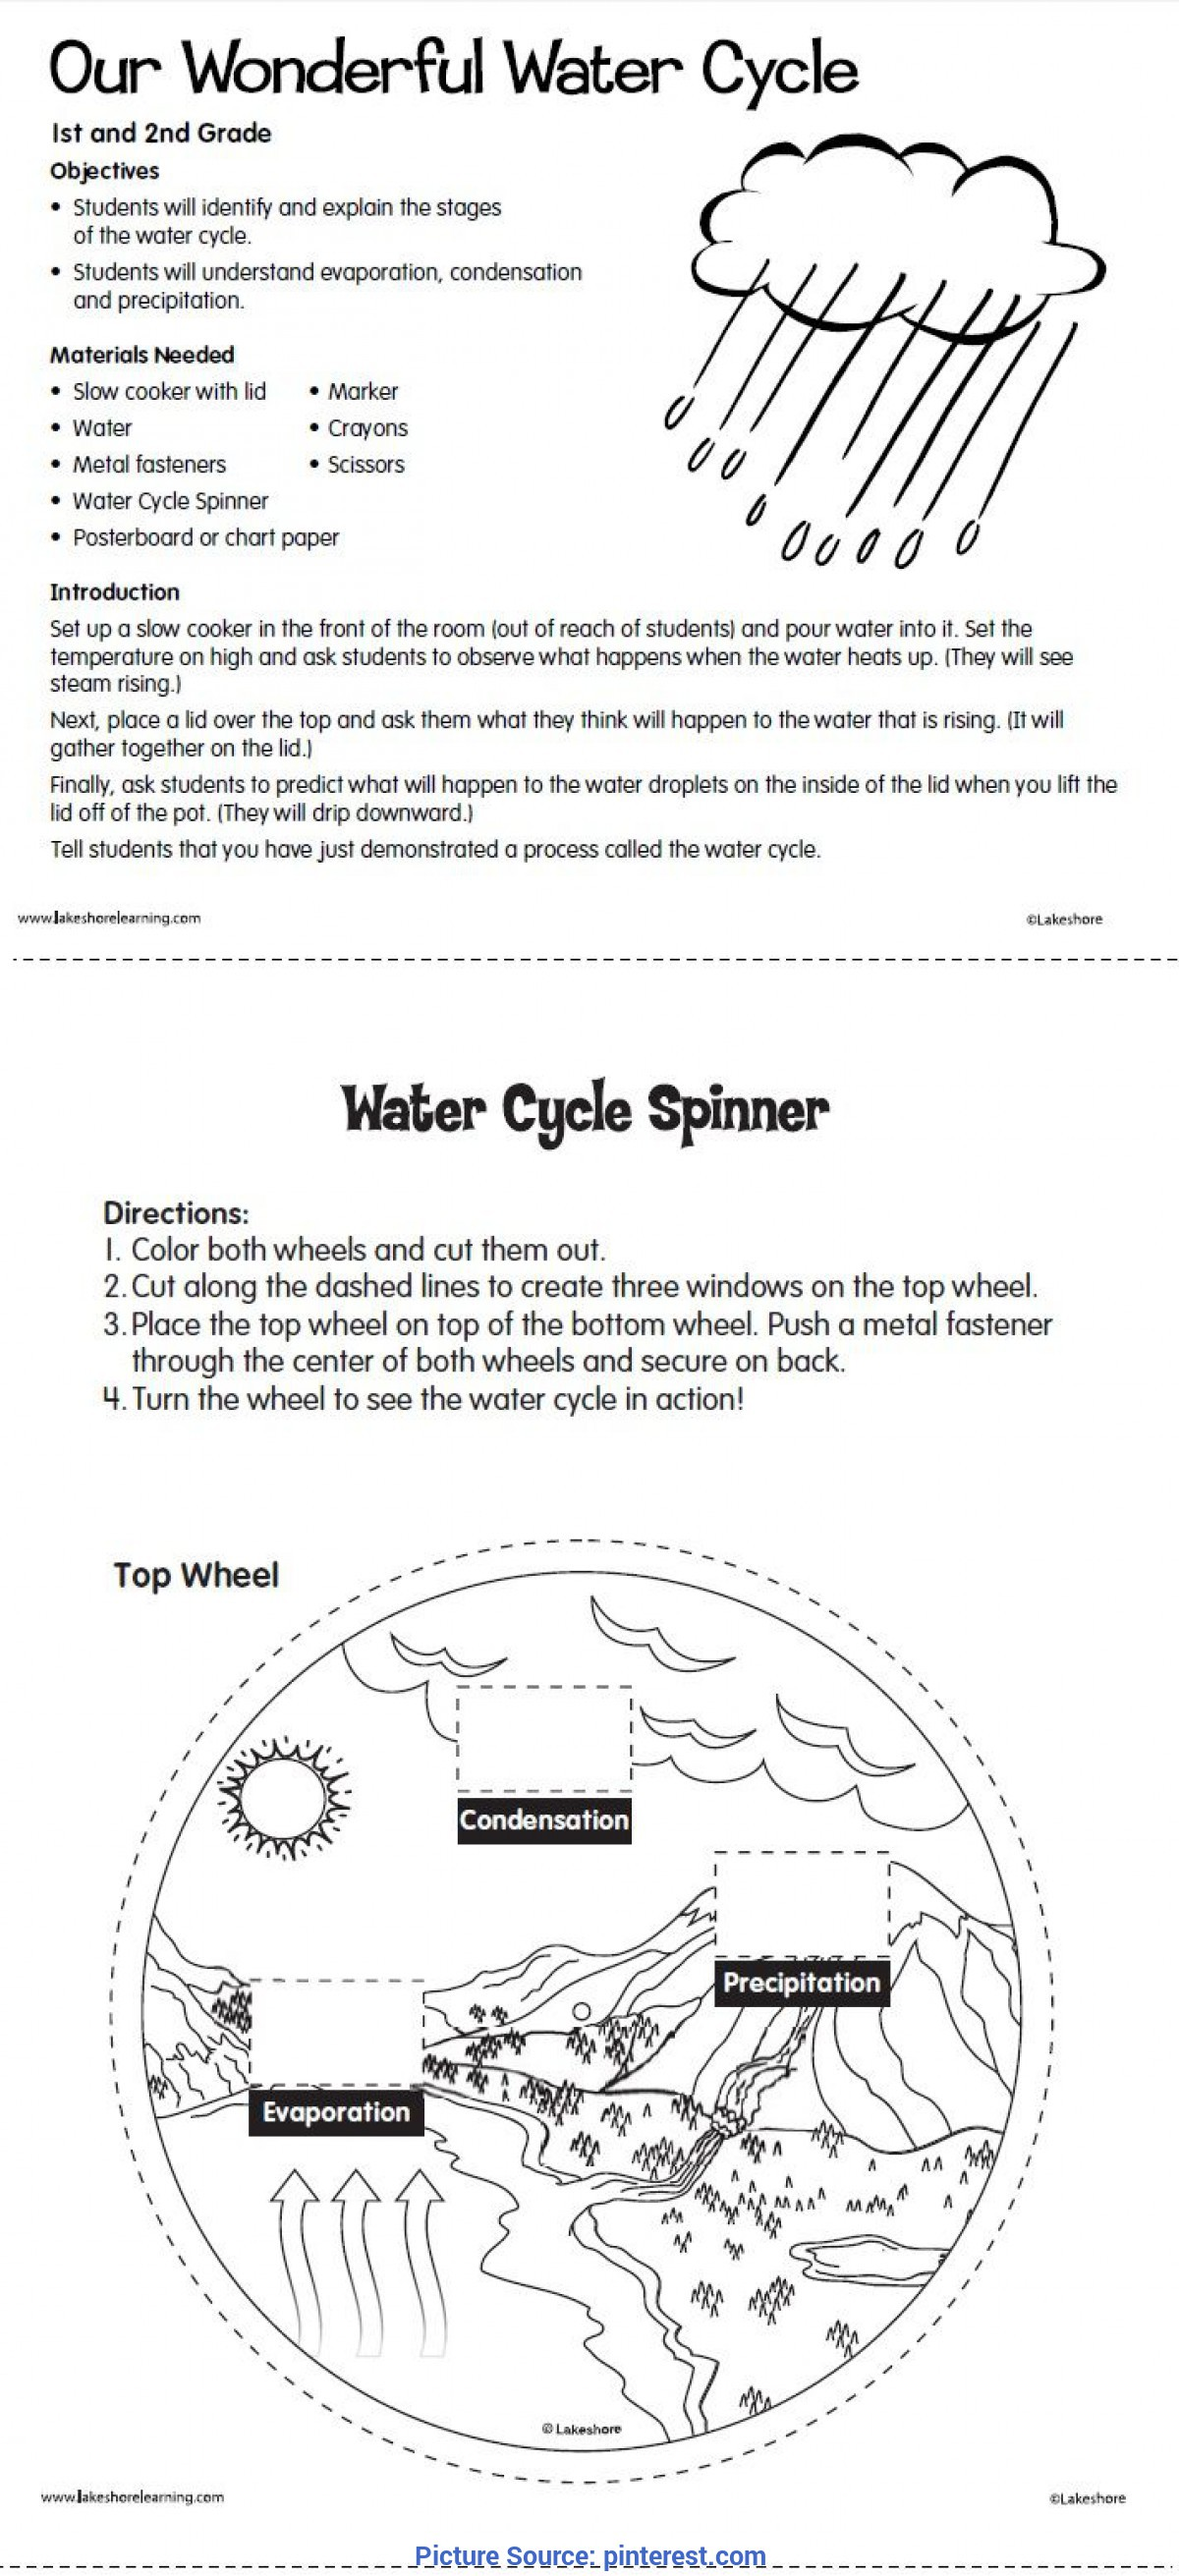 Typical 2Nd Grade Lesson Plans On Water Cycle 357 Best Water Cycle ™? Projects & Ideas For Kids Images O